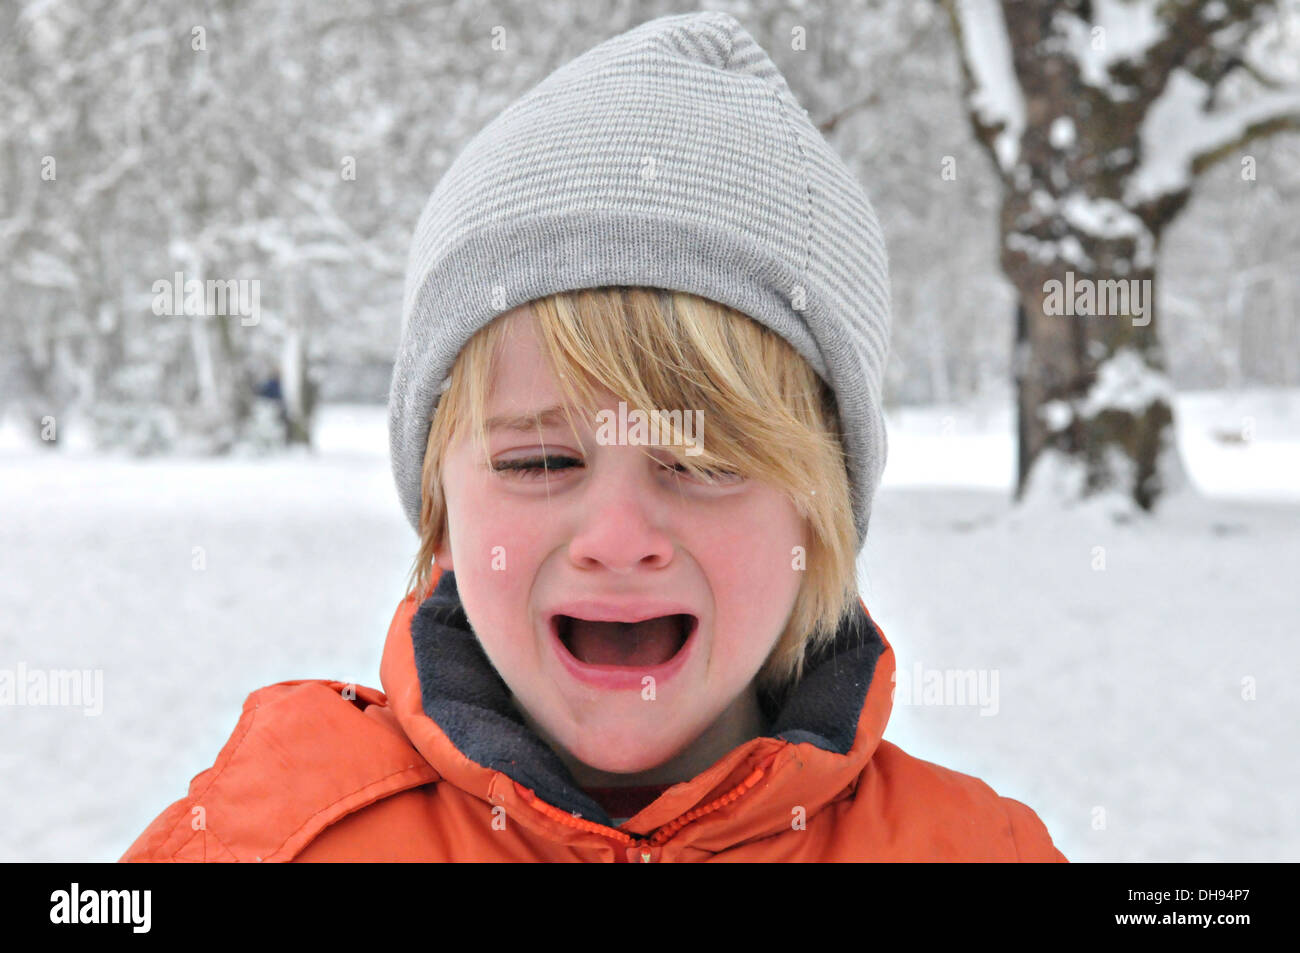 A child snowballing in the snow in winter - Stock Image